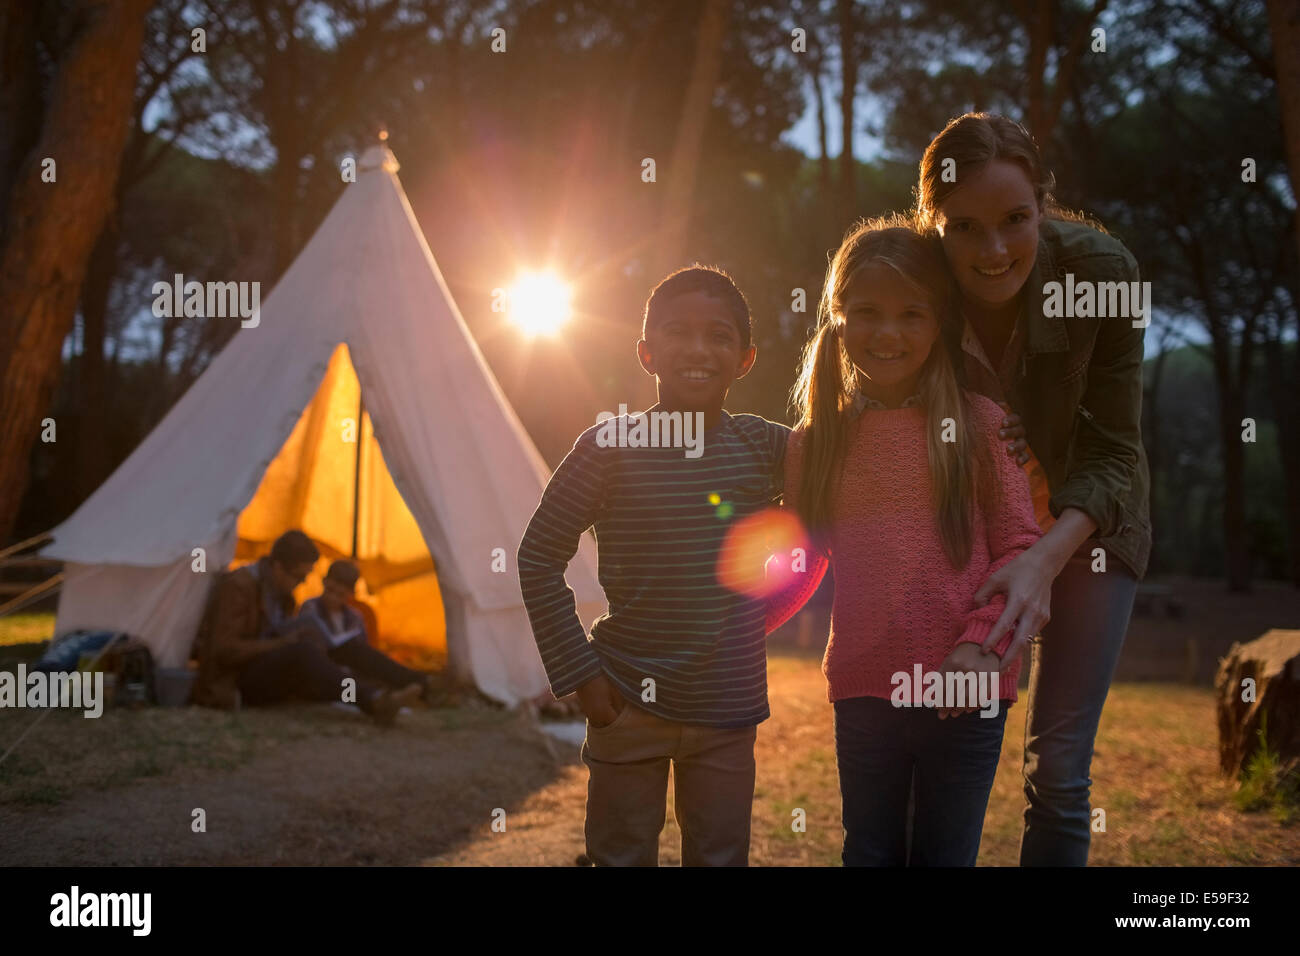 Students and teacher smiling at campsite - Stock Image